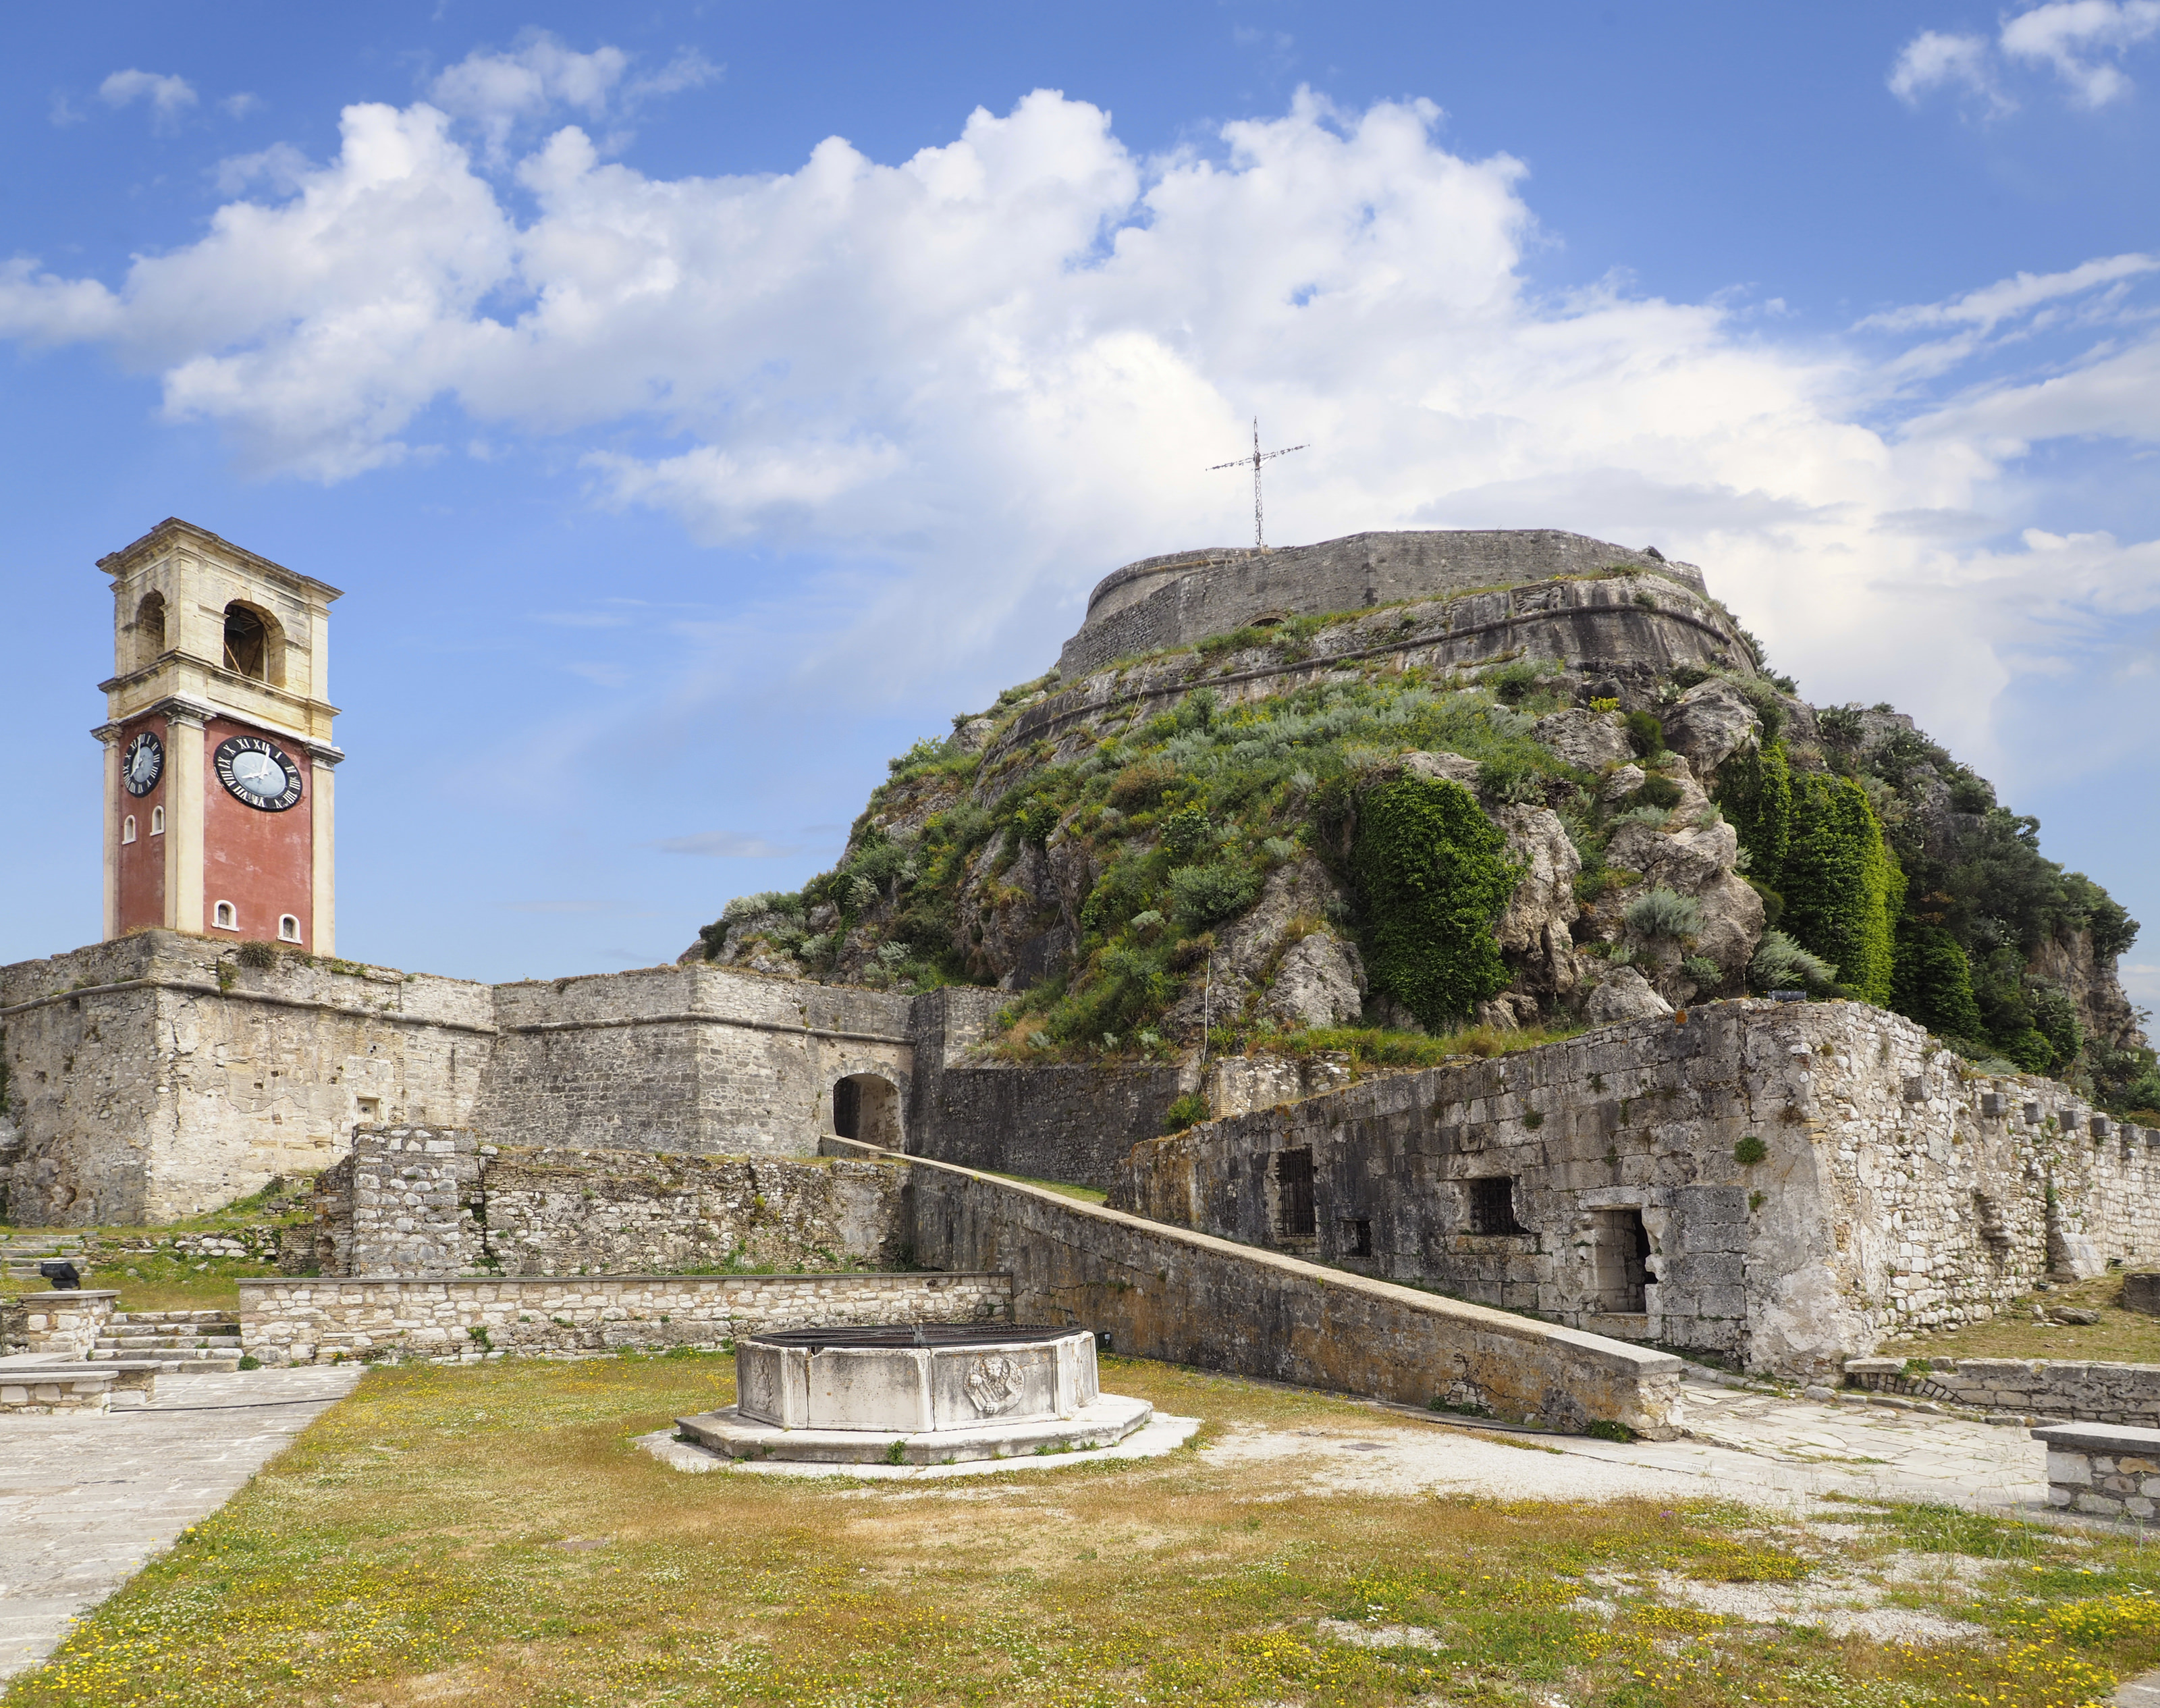 The Old Fort and Clock Tower at Corfu, Greece